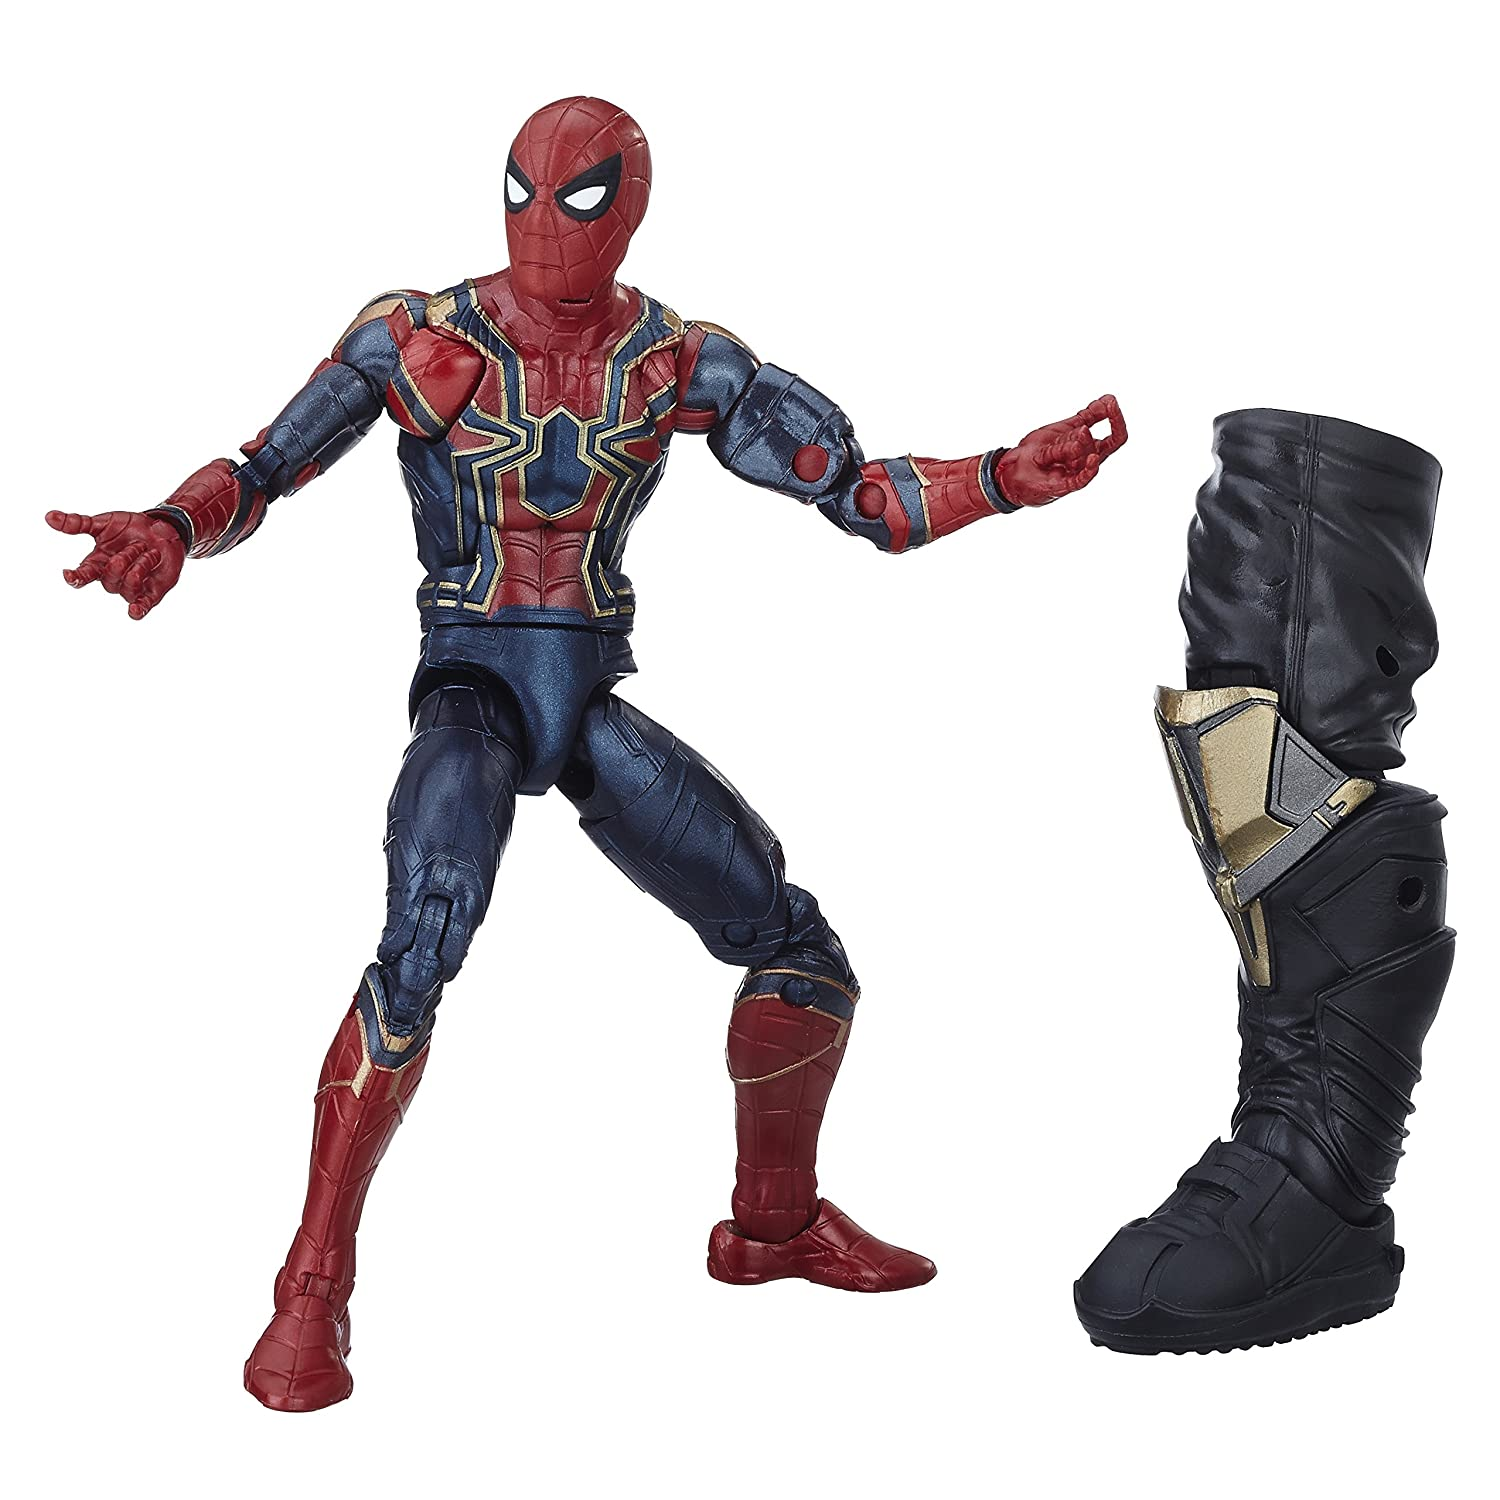 Marvel Legends Series Avengers Infinity War 6-inch Iron Spider Hasbro E2694